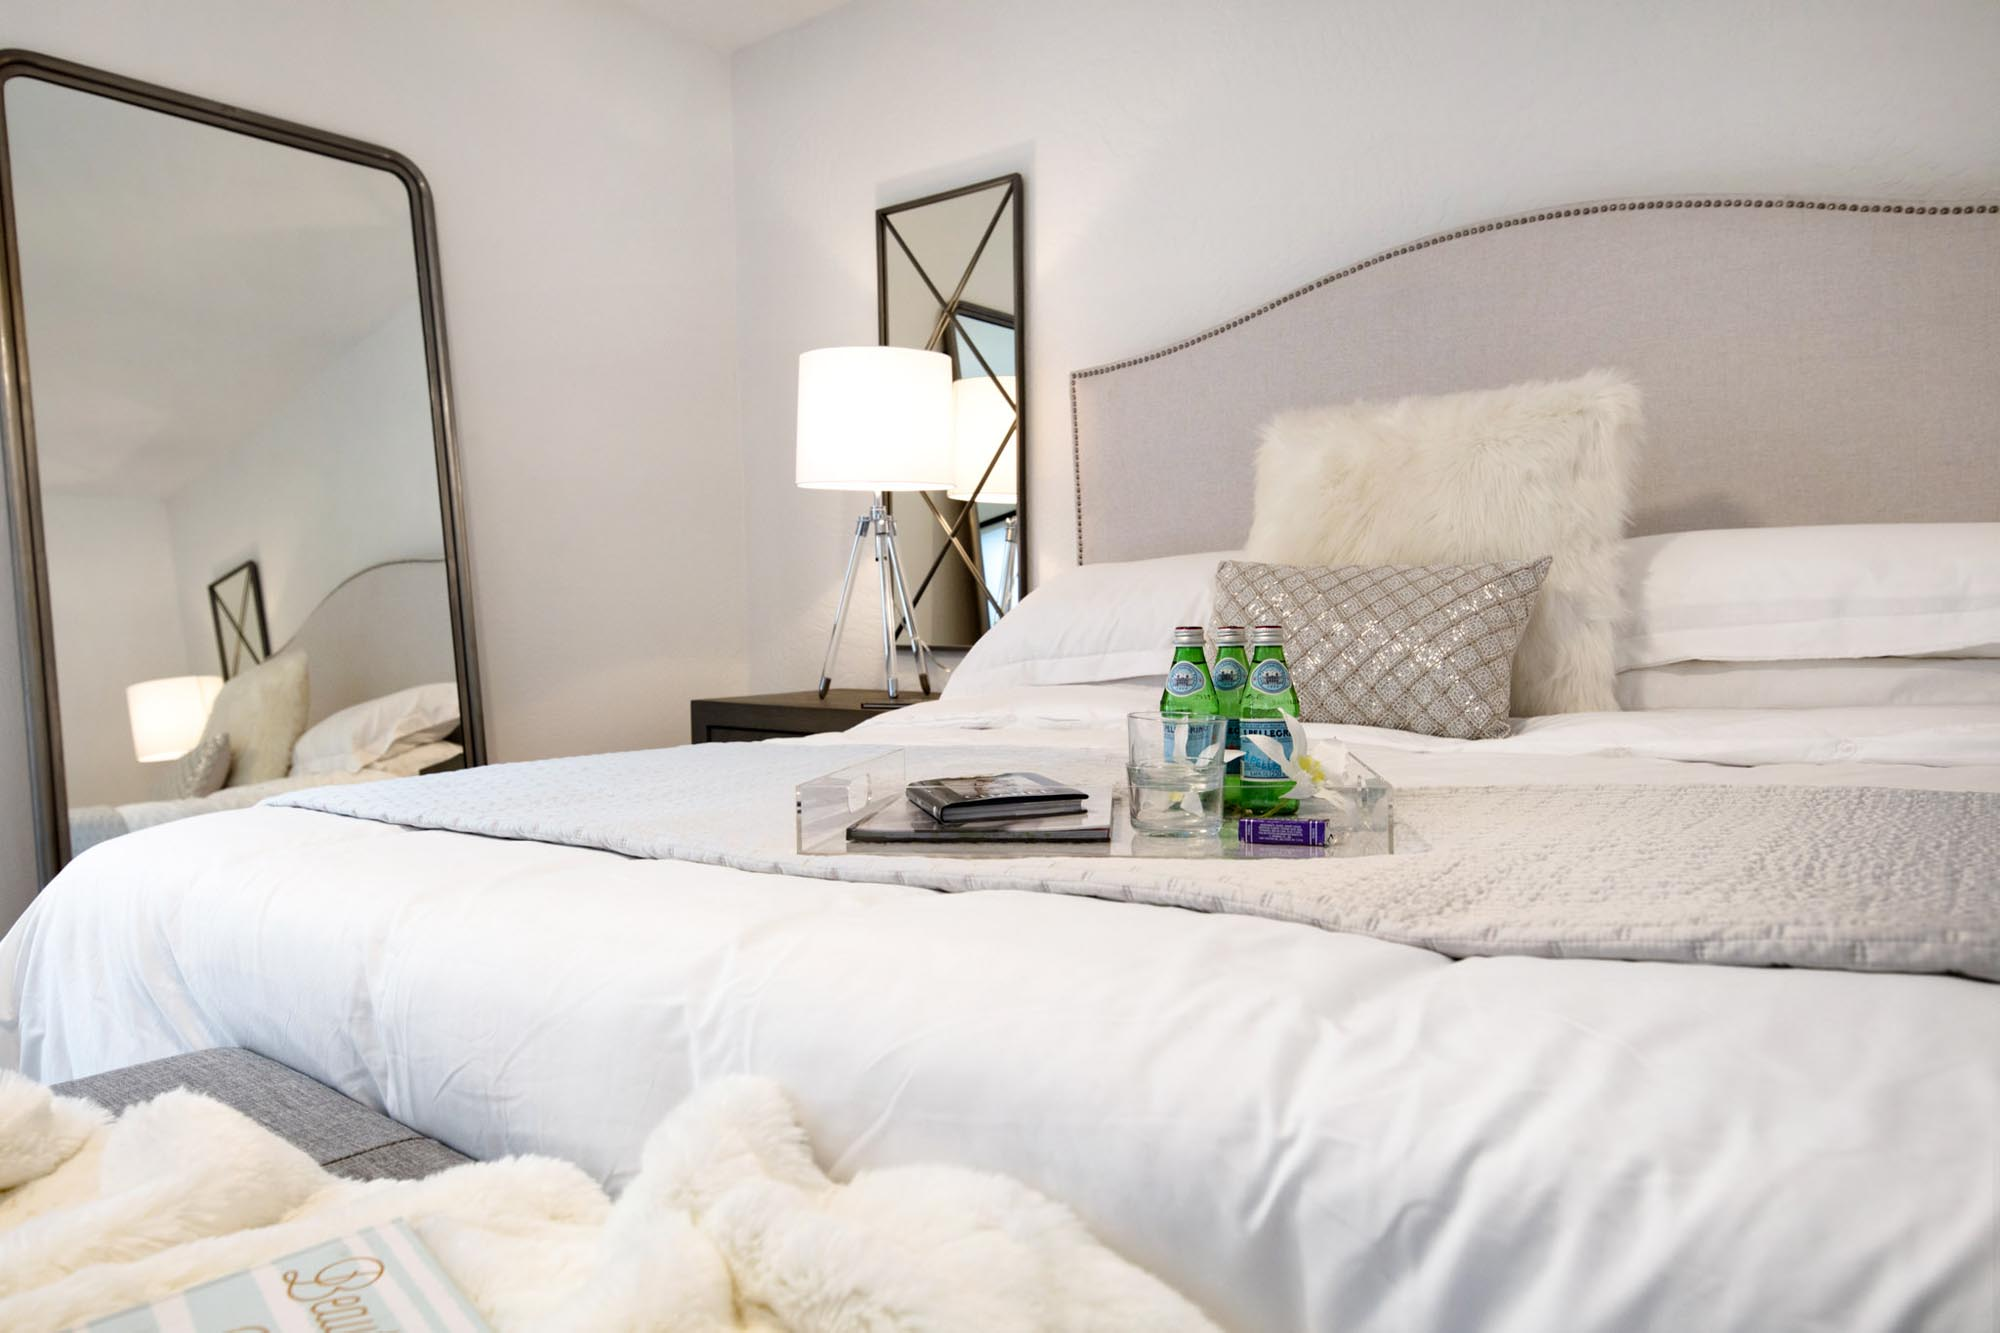 Bedroom with double sized bed and drinks on white bedding